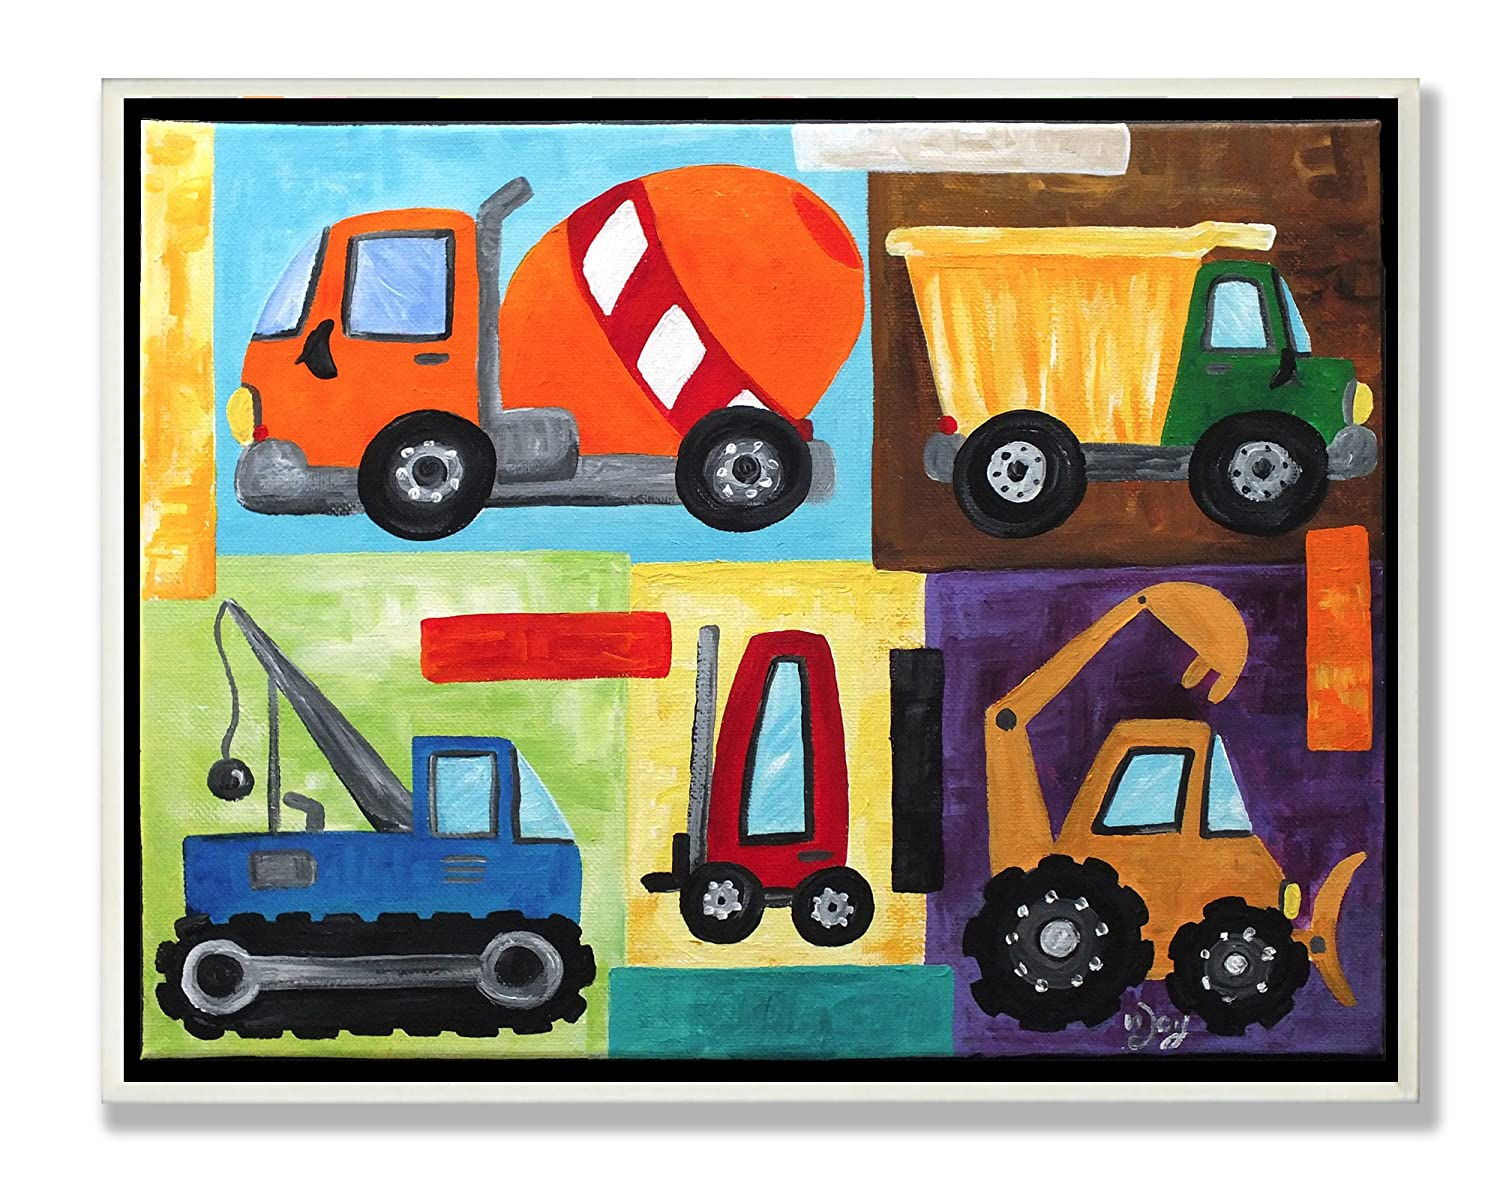 The Kids Room by Stupell Construction Trucks Rectangle Wall Plaque Set, 11 x 0.5 x 15, Proudly Made in USA brp-1641